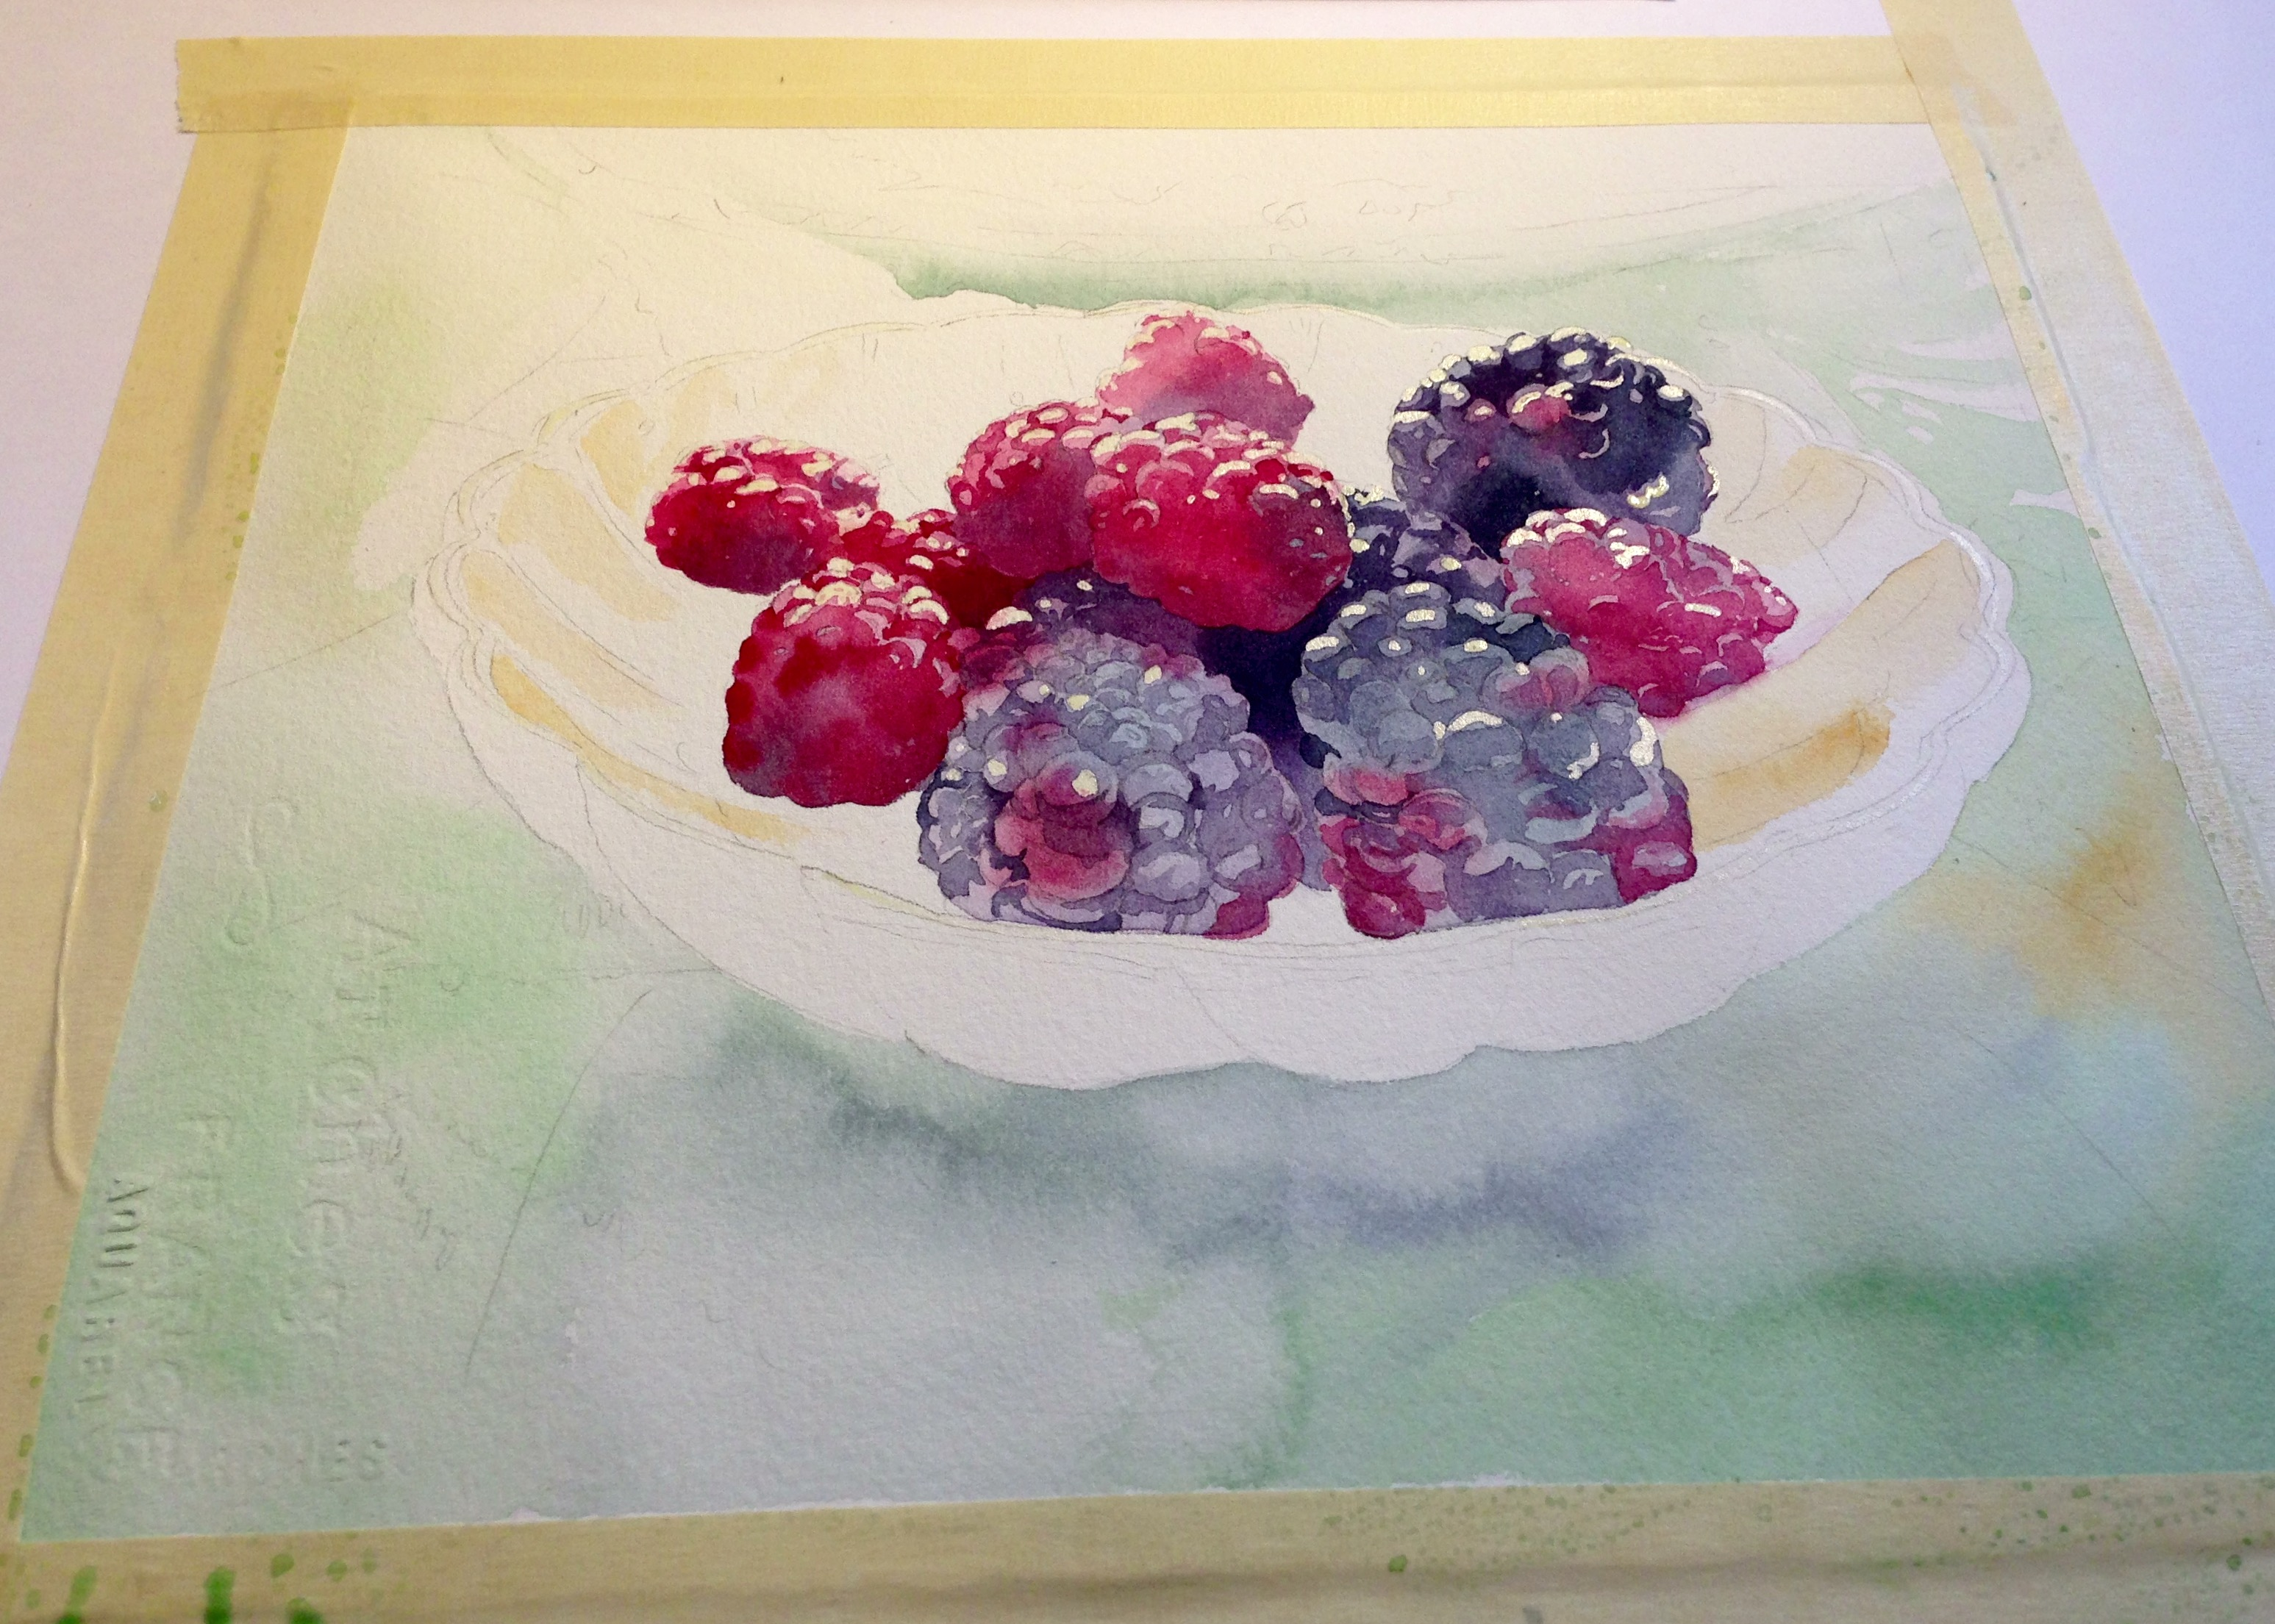 Adding light to a still life watercolor